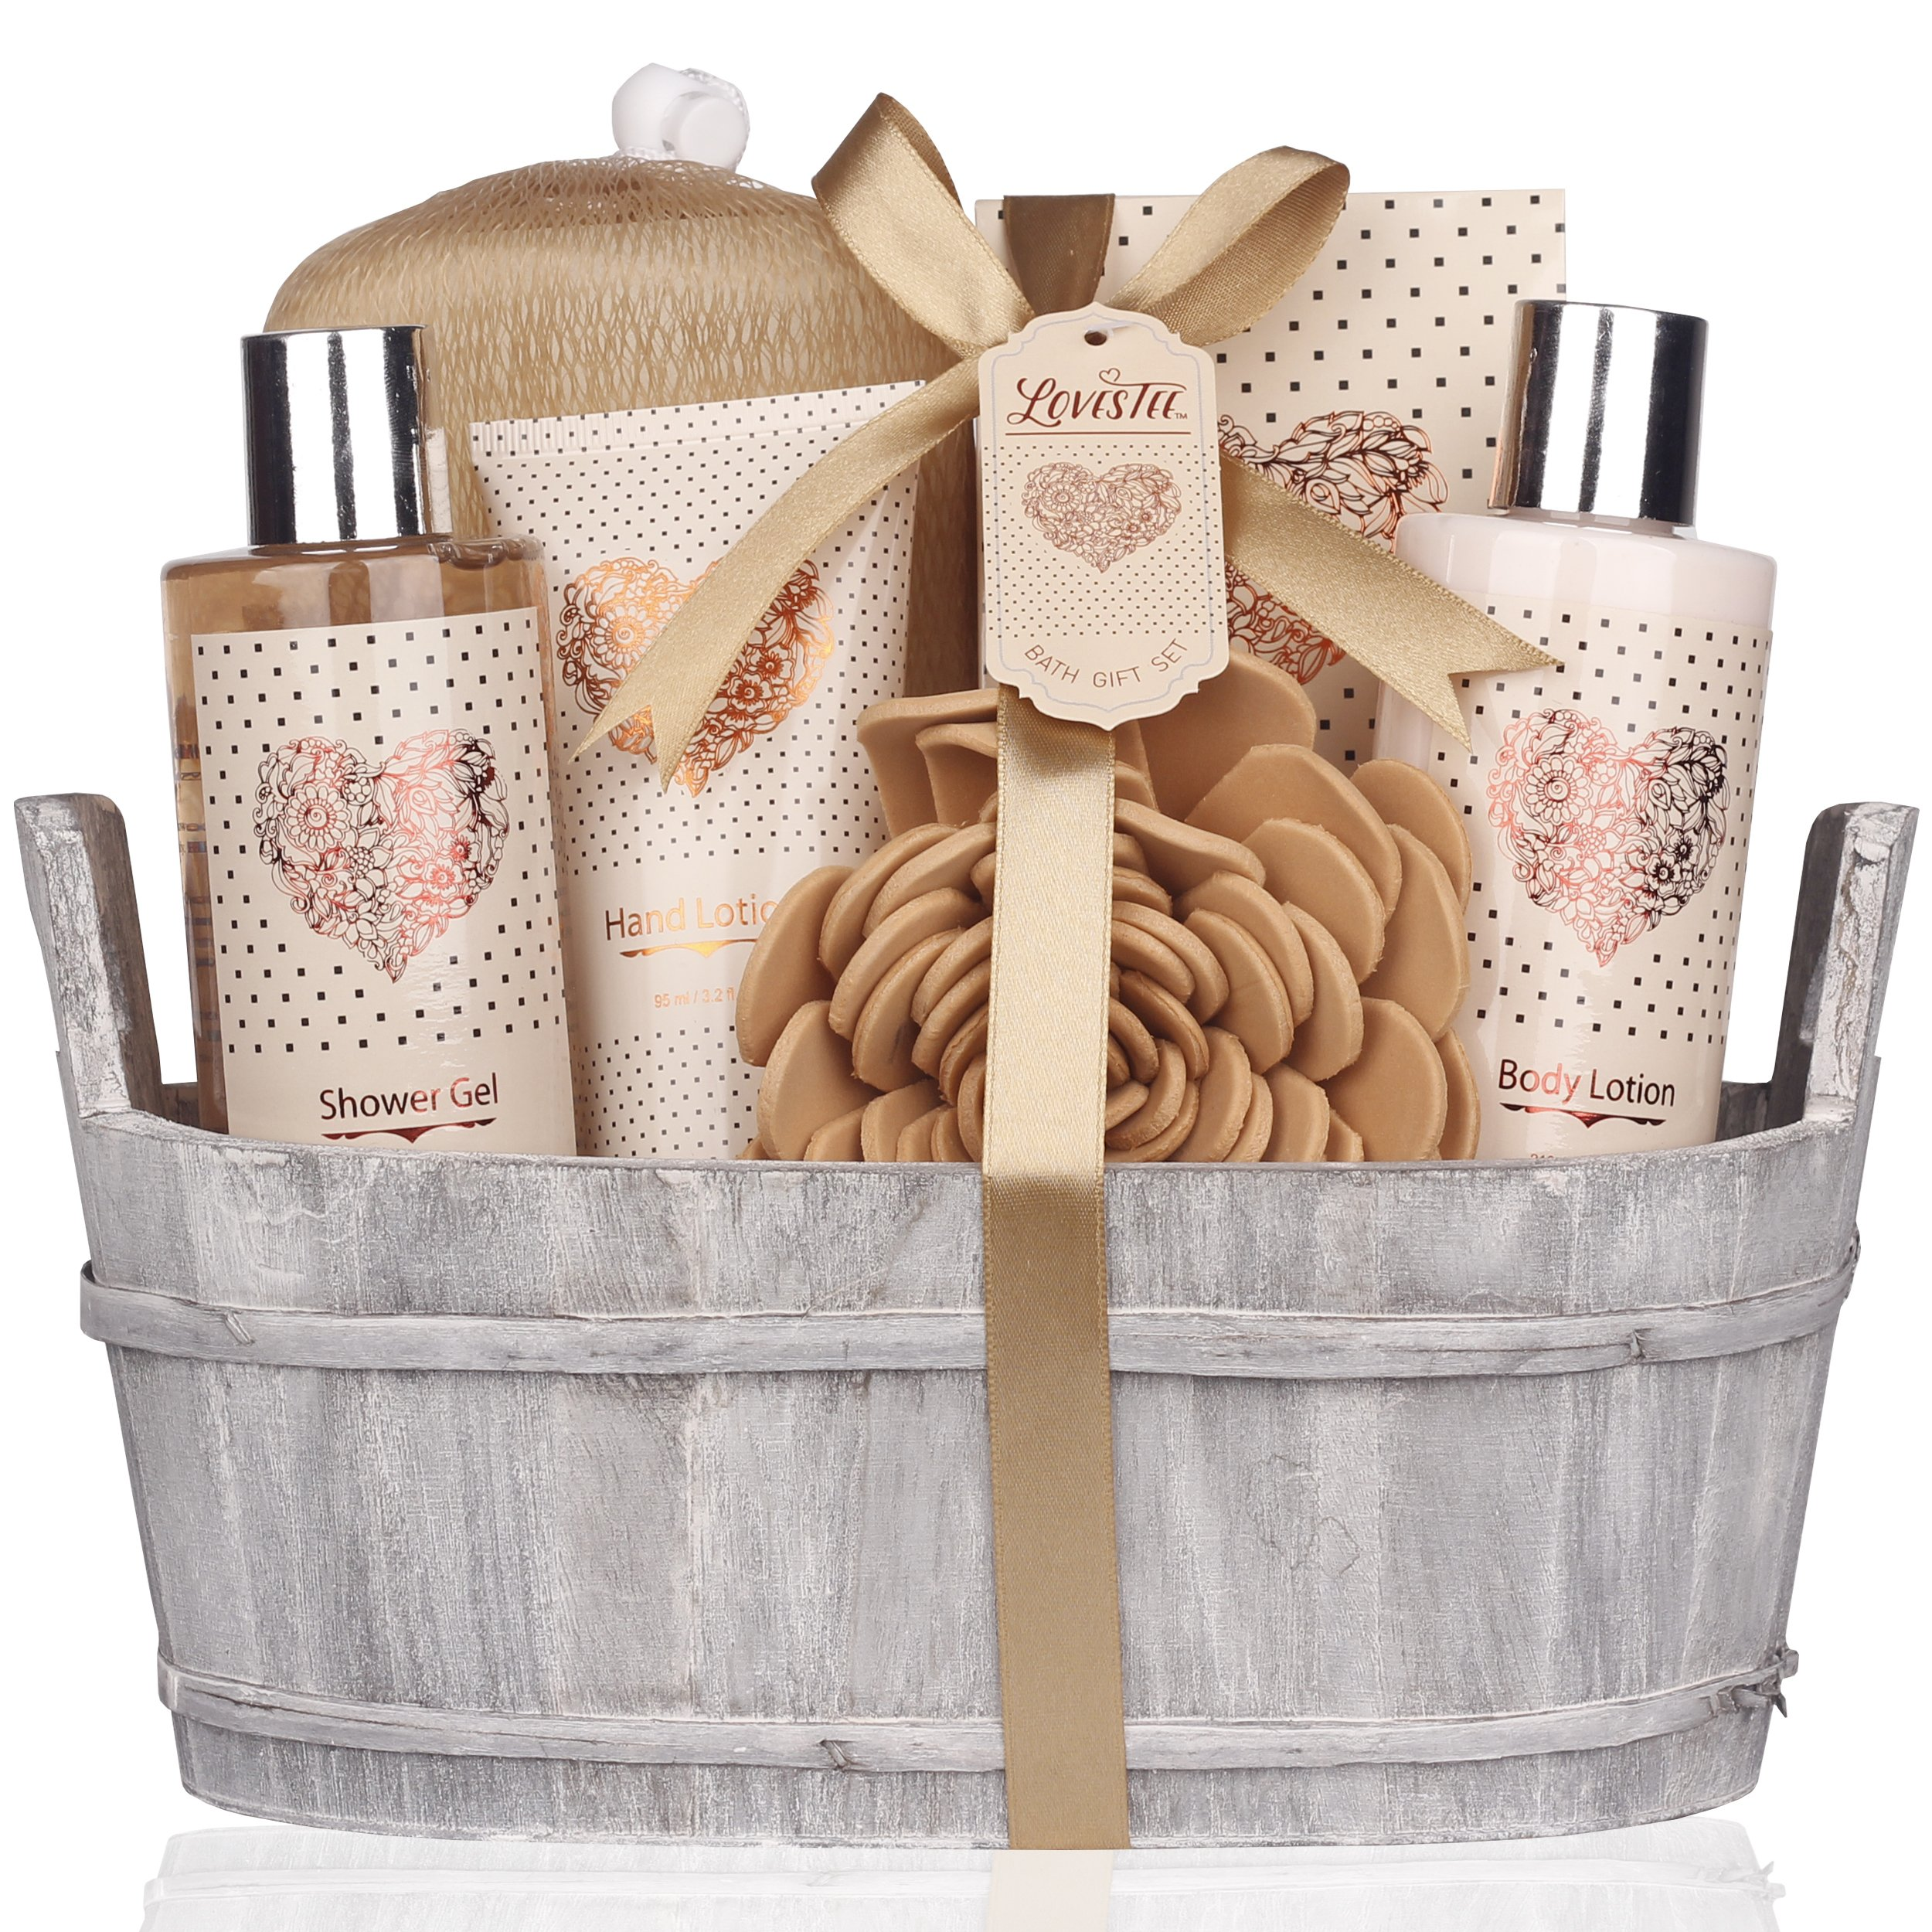 spa gift basket bath and body set with vanilla fragrance by lovestee bath gift